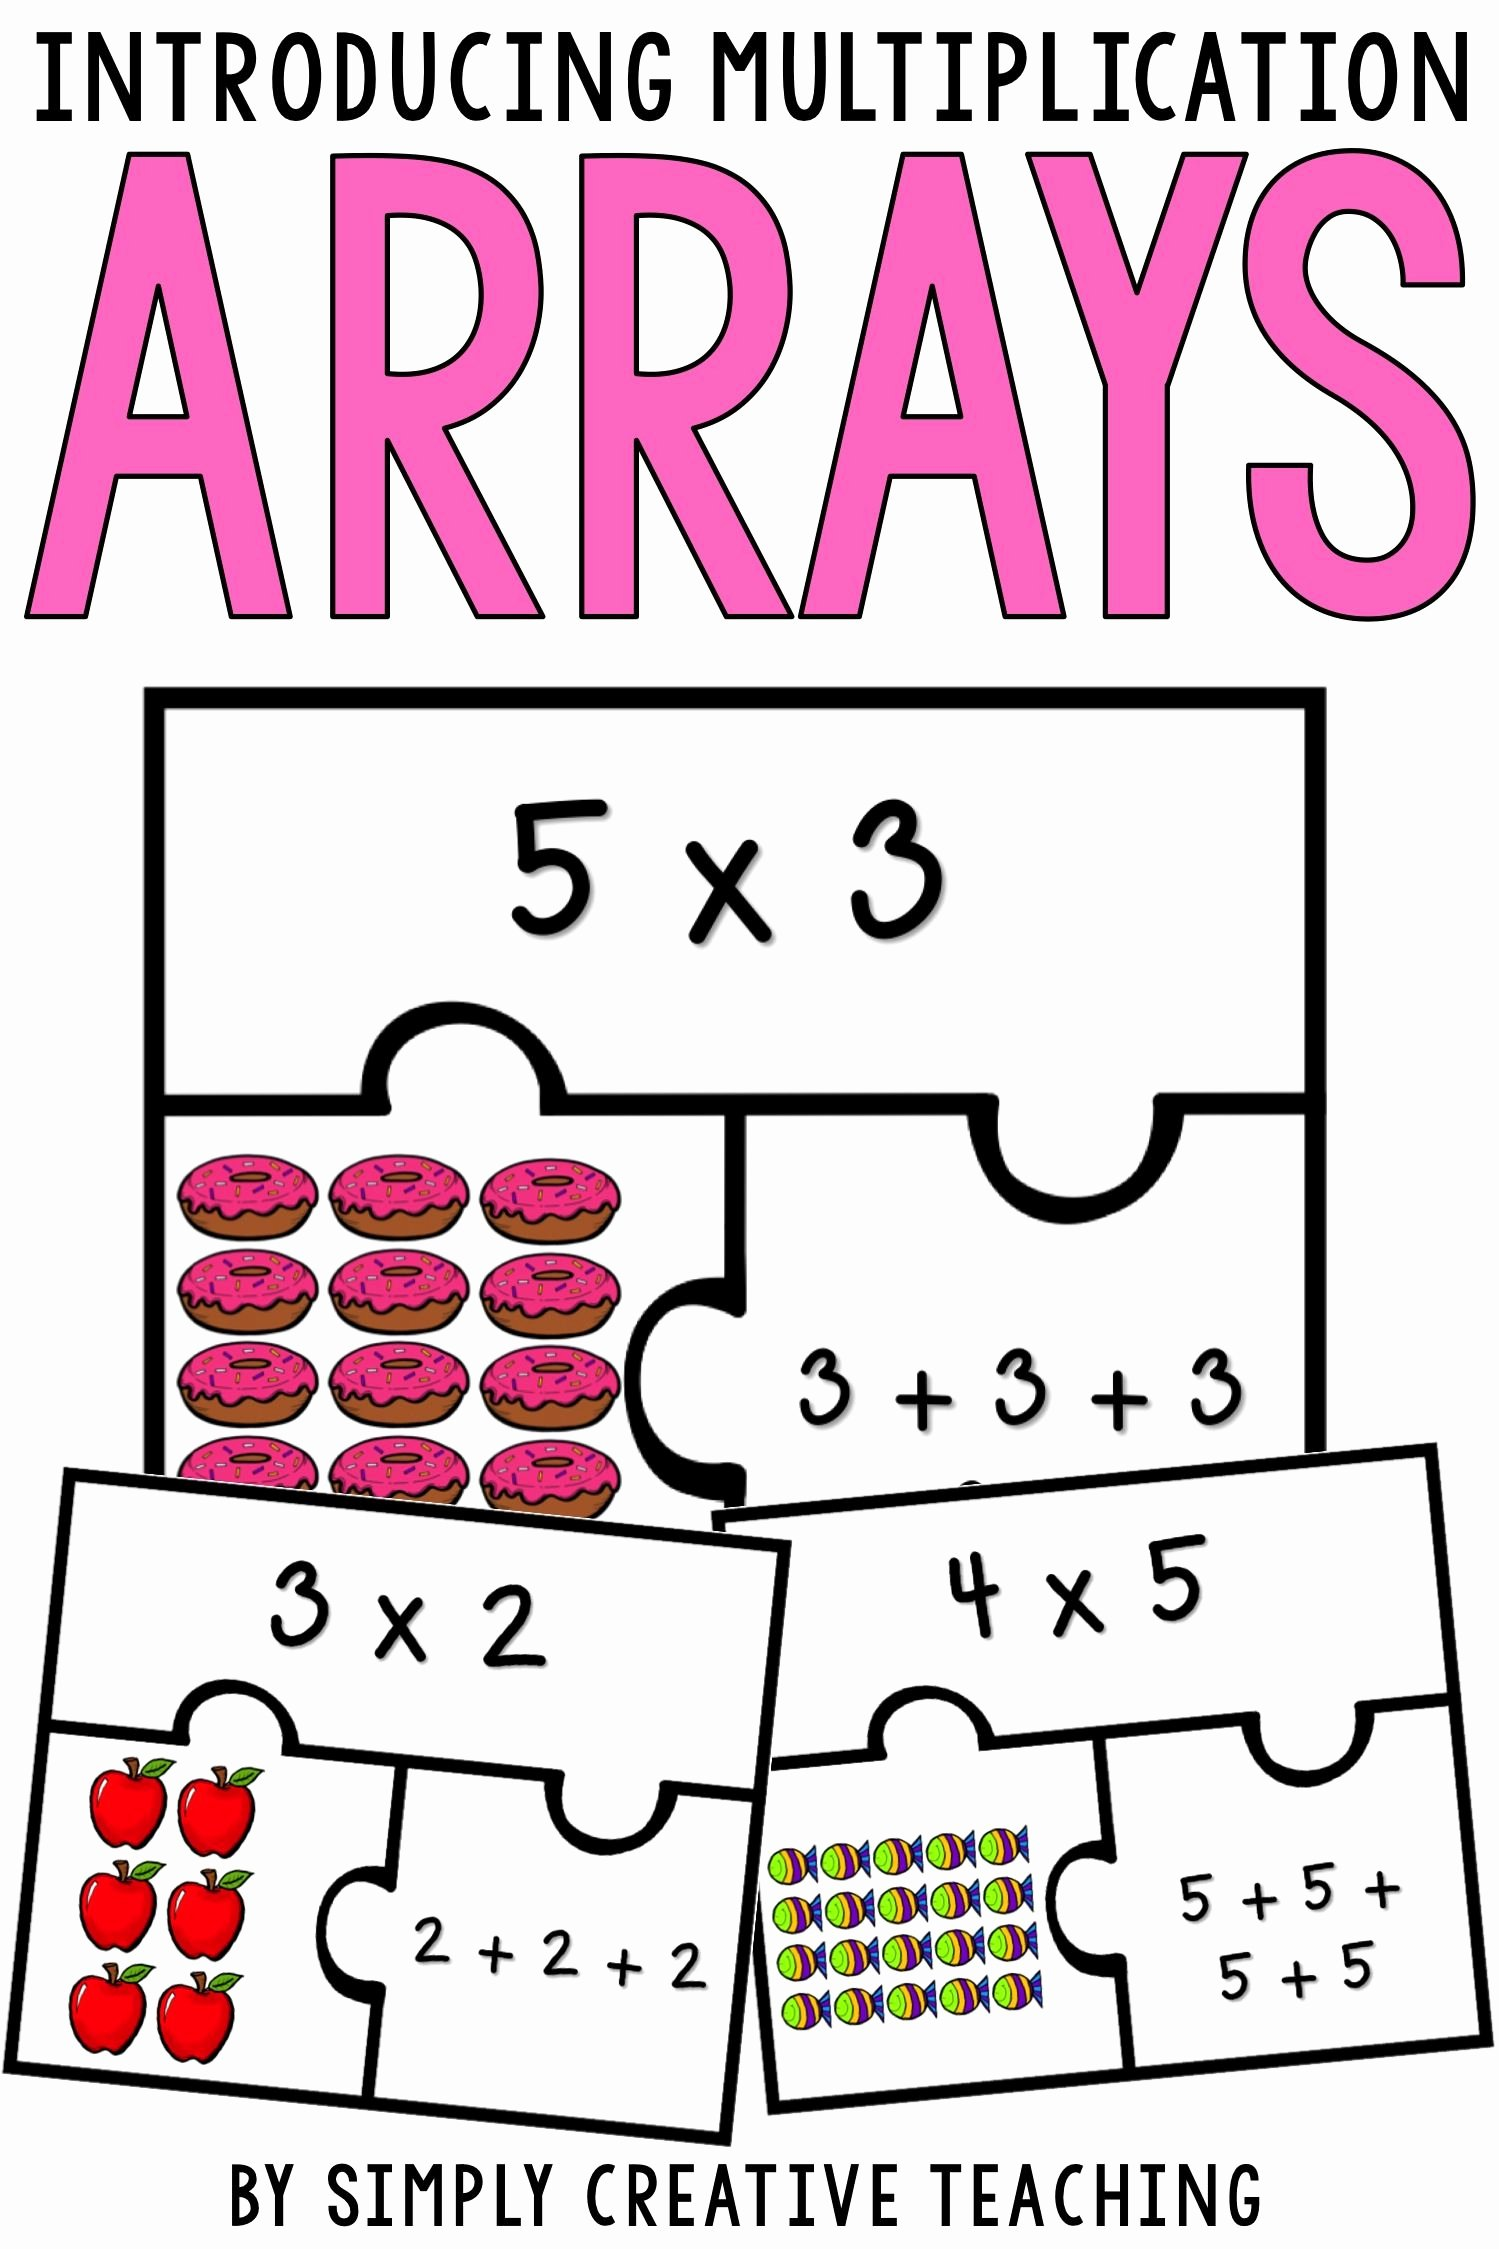 Introducing Multiplication Worksheets Lovely Introducing Multiplication to Your 2nd and 3rd Grade